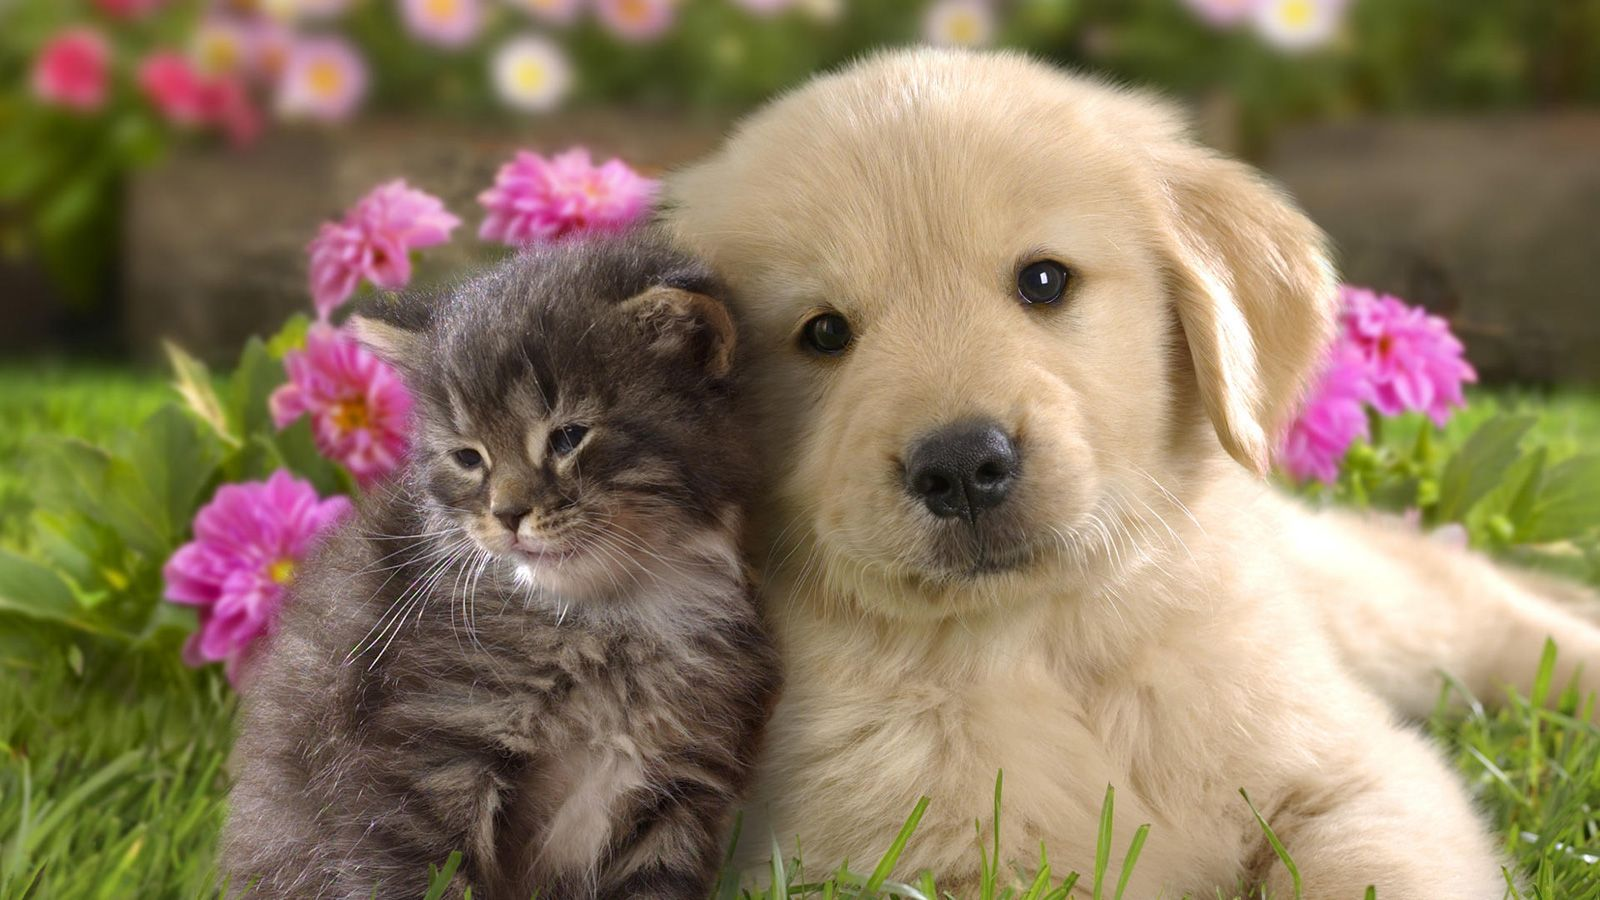 cat and dog together wallpapers free